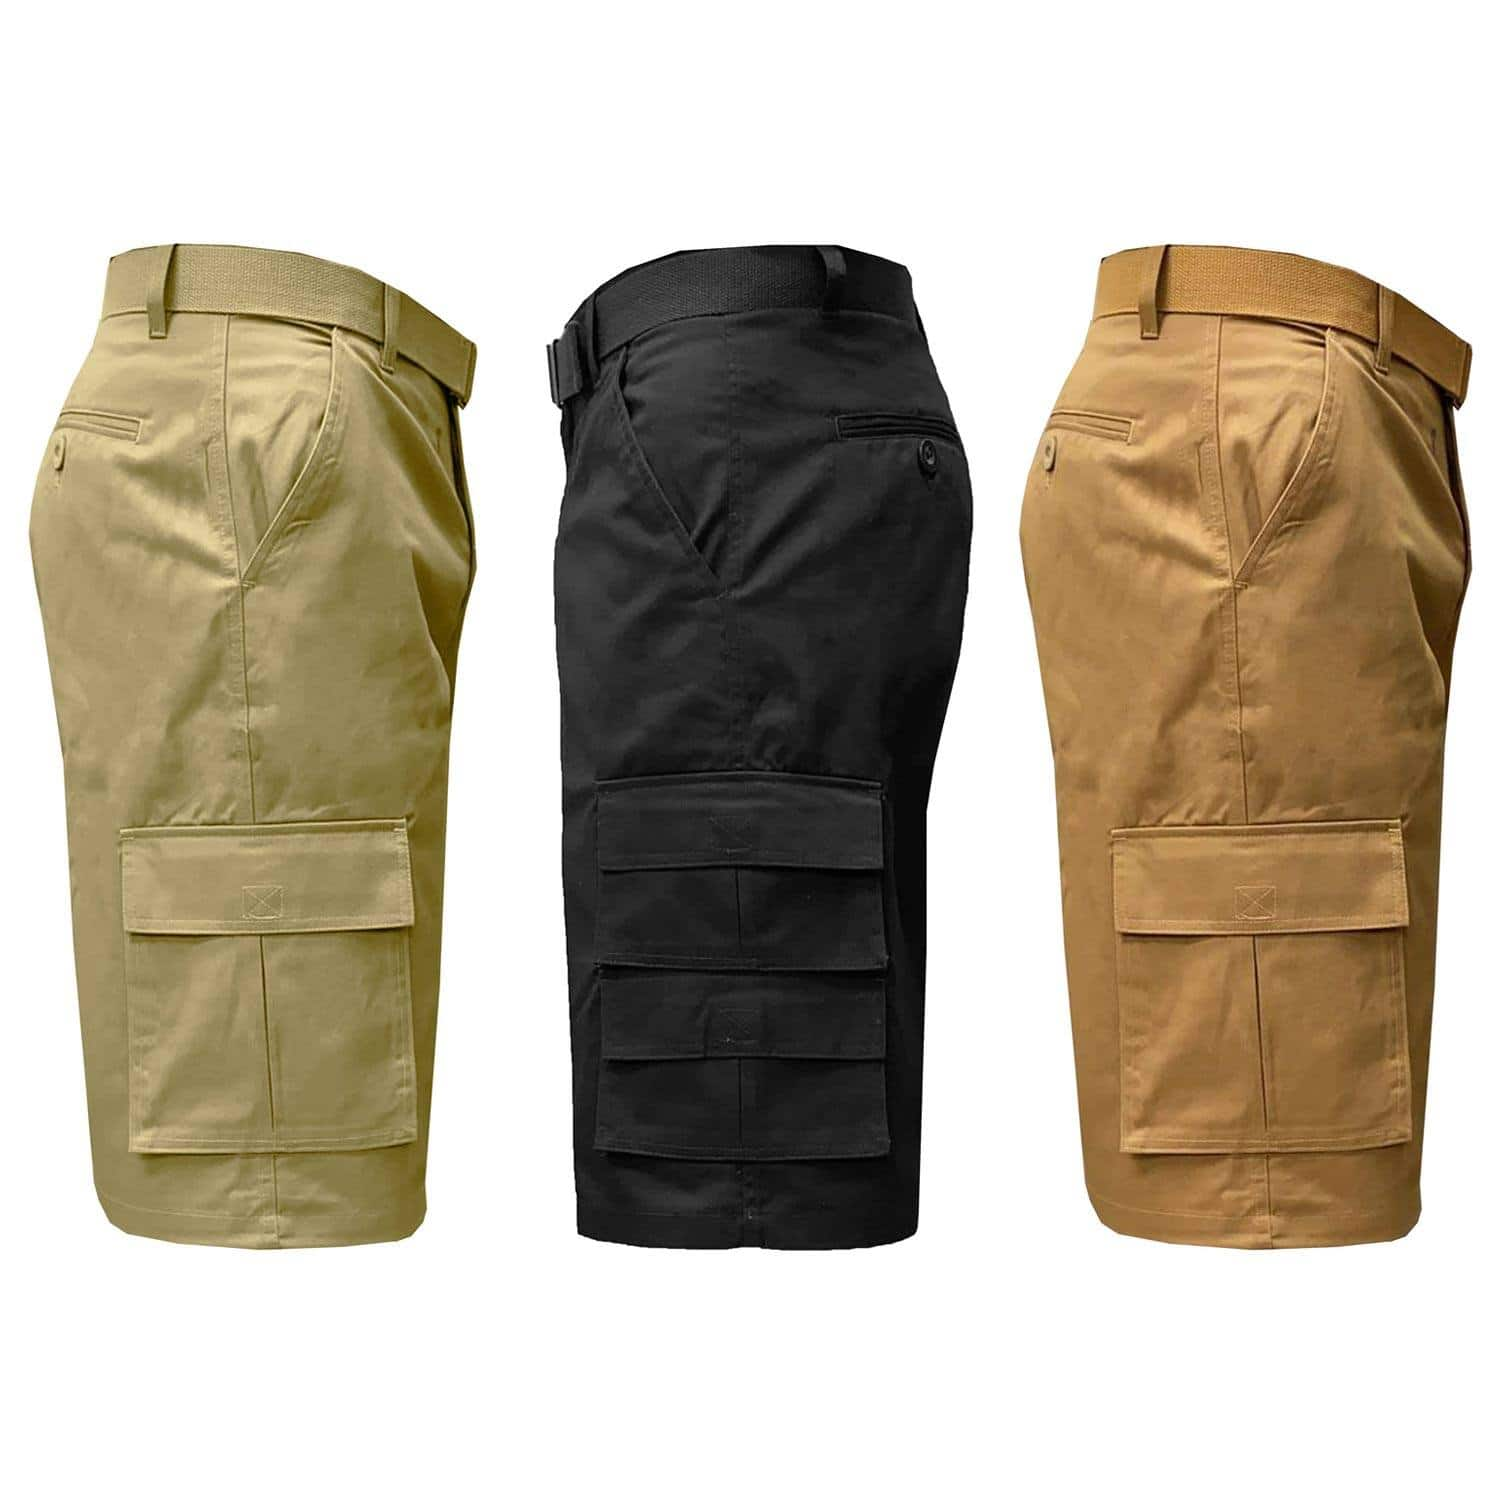 3-Pack of Men's Belted Cargo Shorts $29.74 + Free Shipping